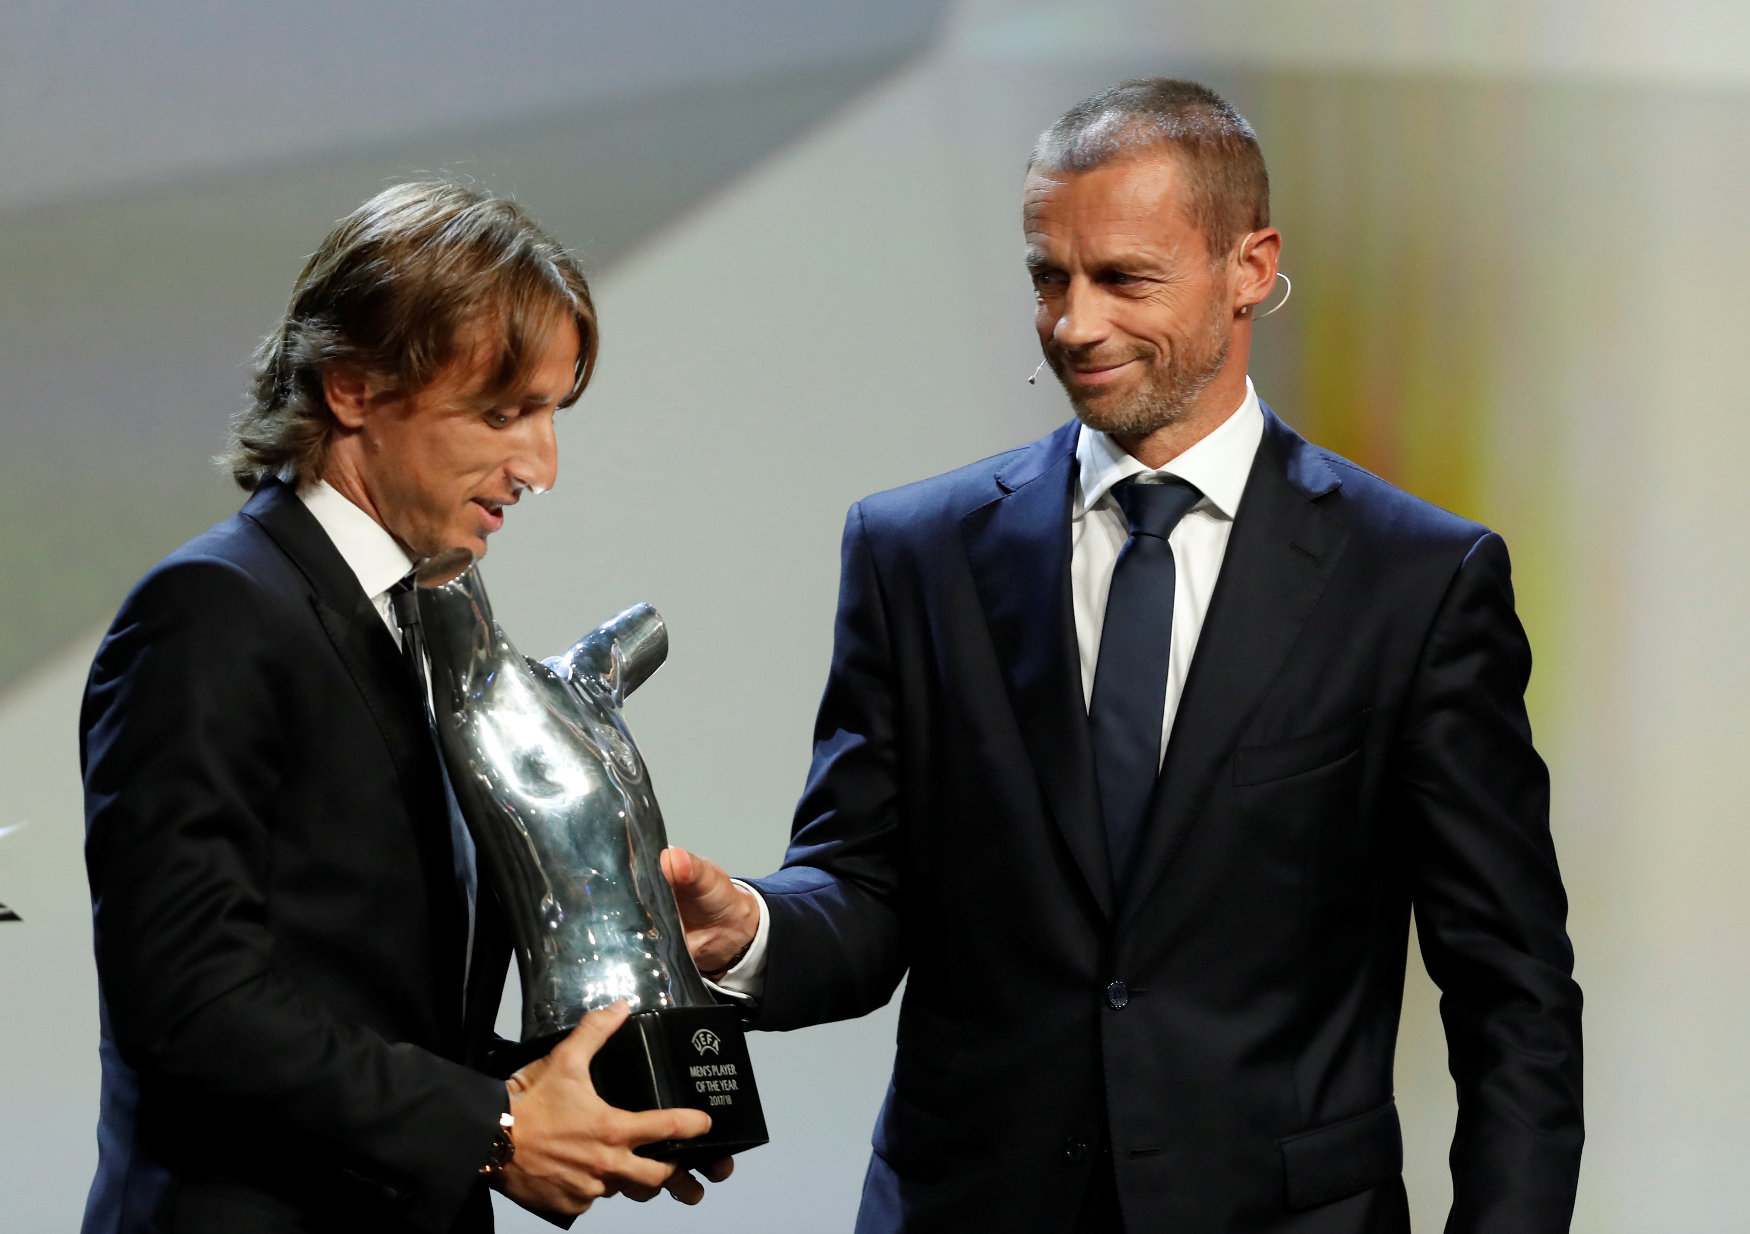 Soccer Football - Champions League Group Stage Draw - Grimaldi Forum, Monaco - August 30, 2018   UEFA President Aleksander Ceferin presents Real Madrid's Luka Modric with the UEFA Men's Player of the Year award   REUTERS/Eric Gaillard